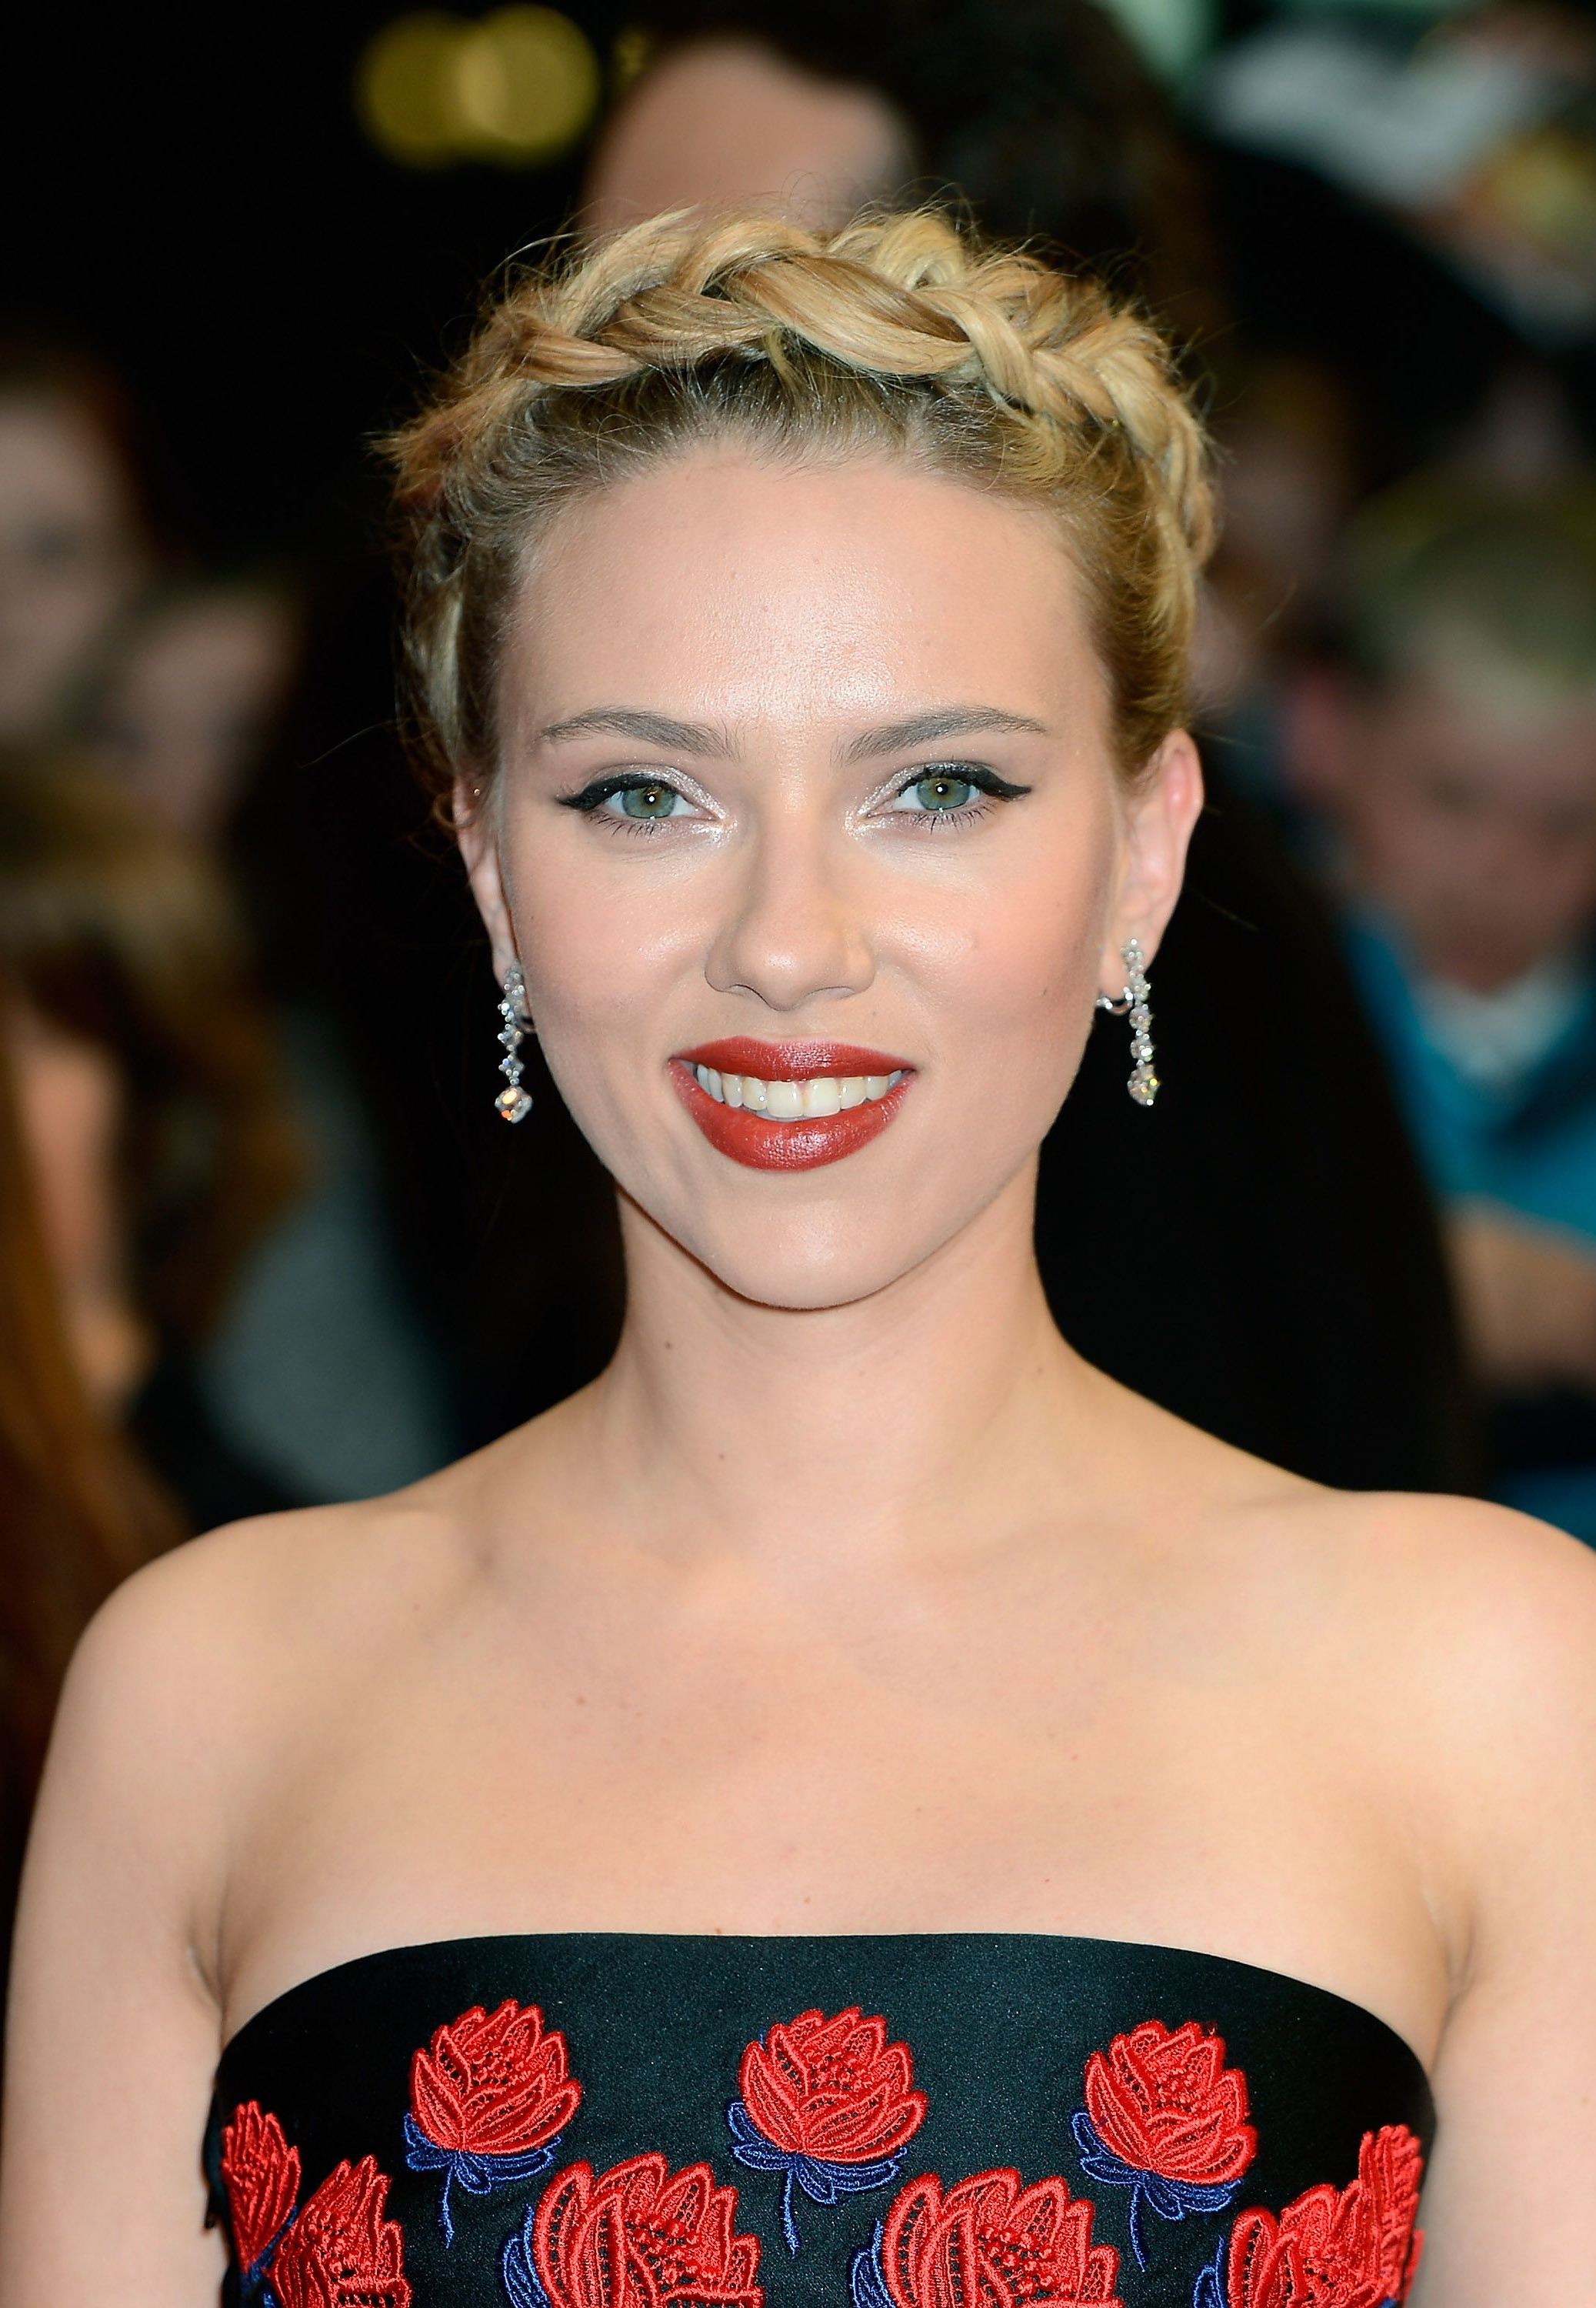 Medium Hairstyles For Women: 23 Mid Length Haircuts To Try In 2018 In Well Liked Scarlett Johansson Medium Hairstyles (View 8 of 20)